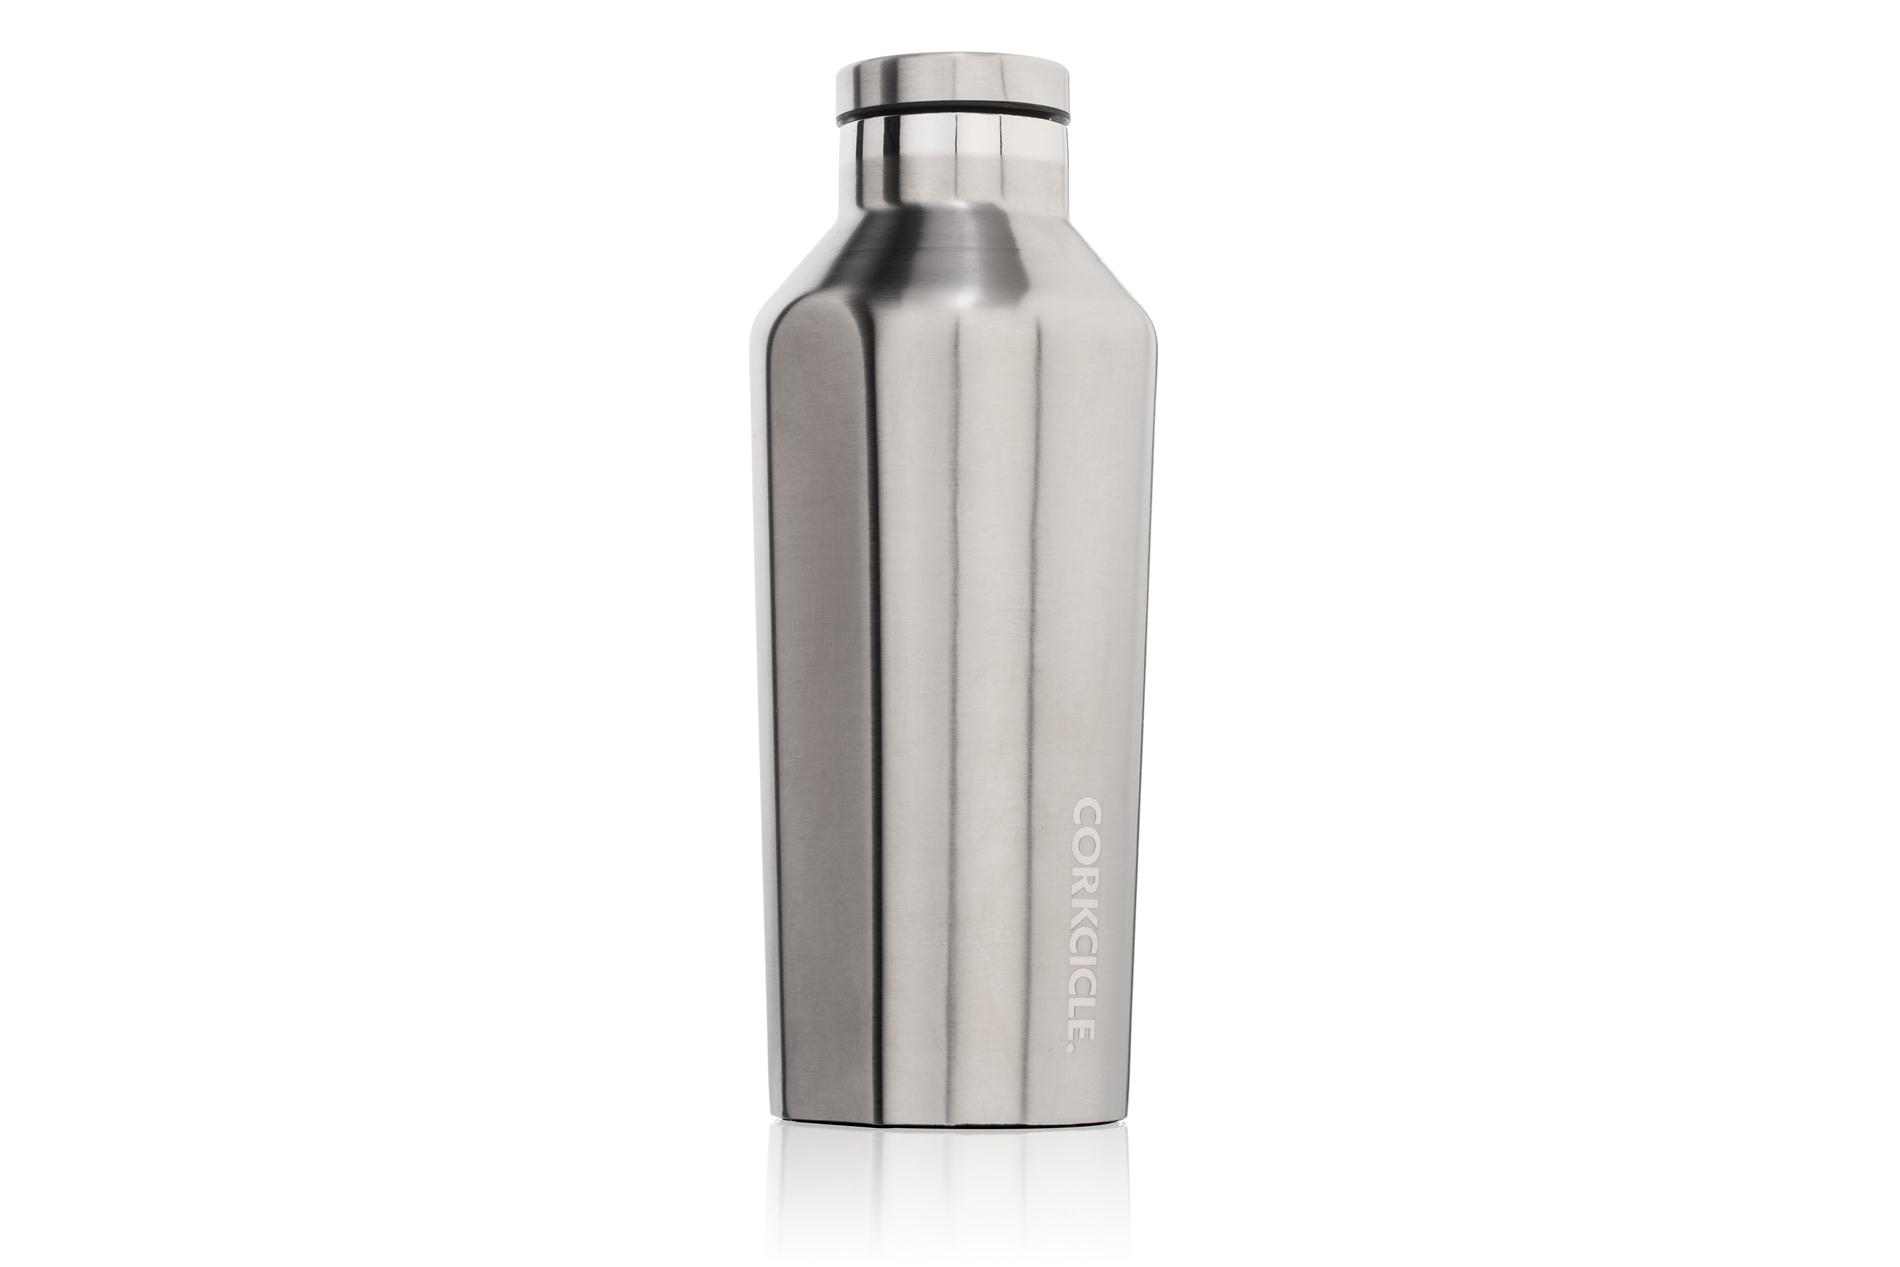 Corkcicle Trinkflasche / Thermo Isolierflasche Brushed steel 265 ml Gloss